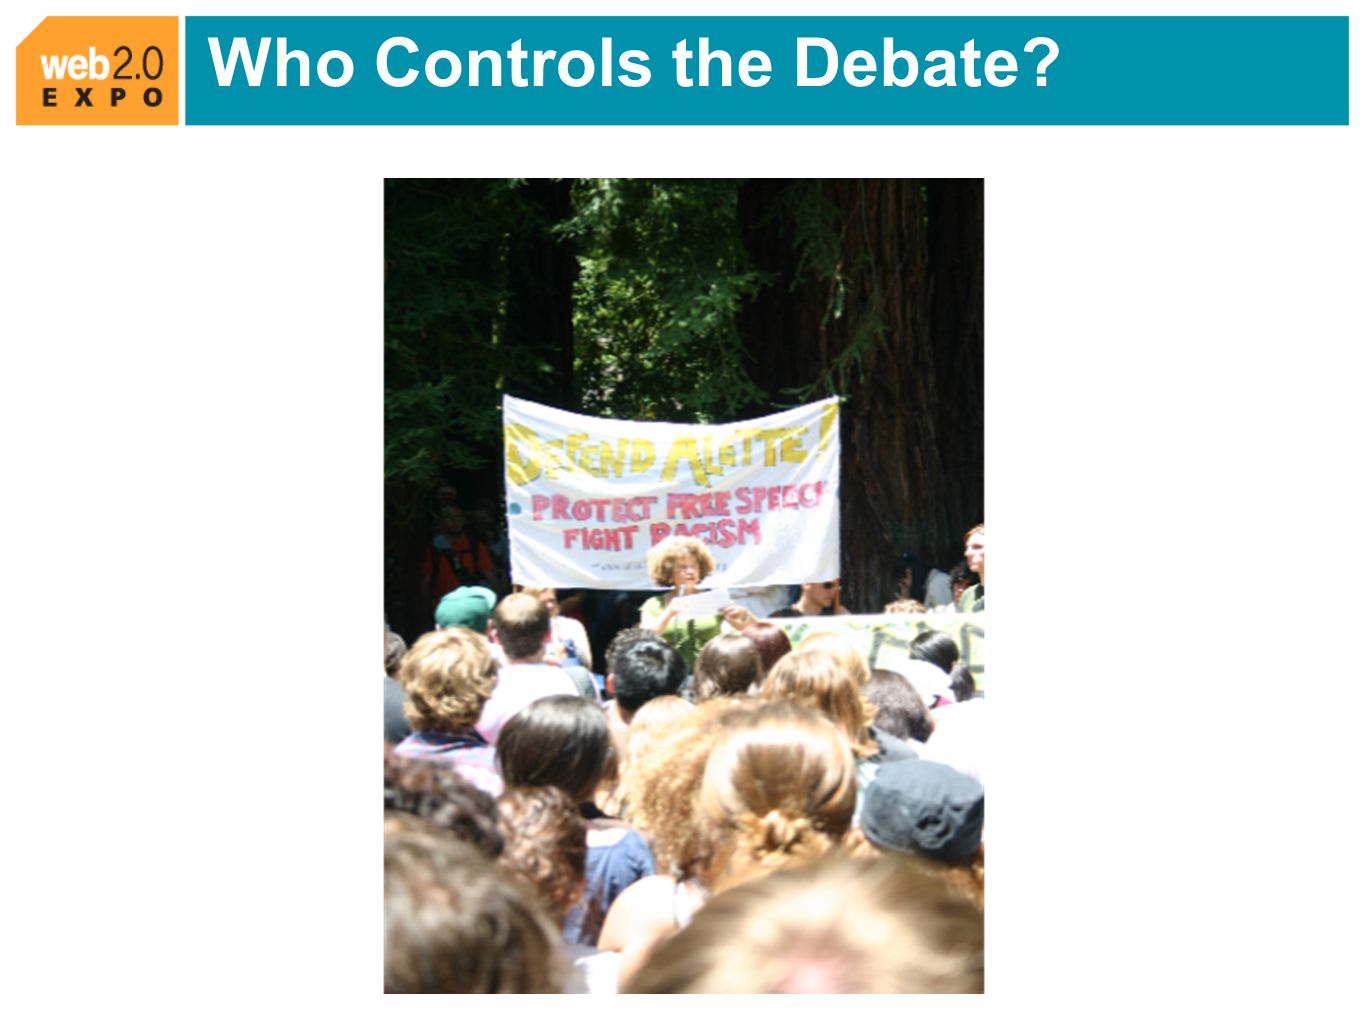 Who Controls the Debate